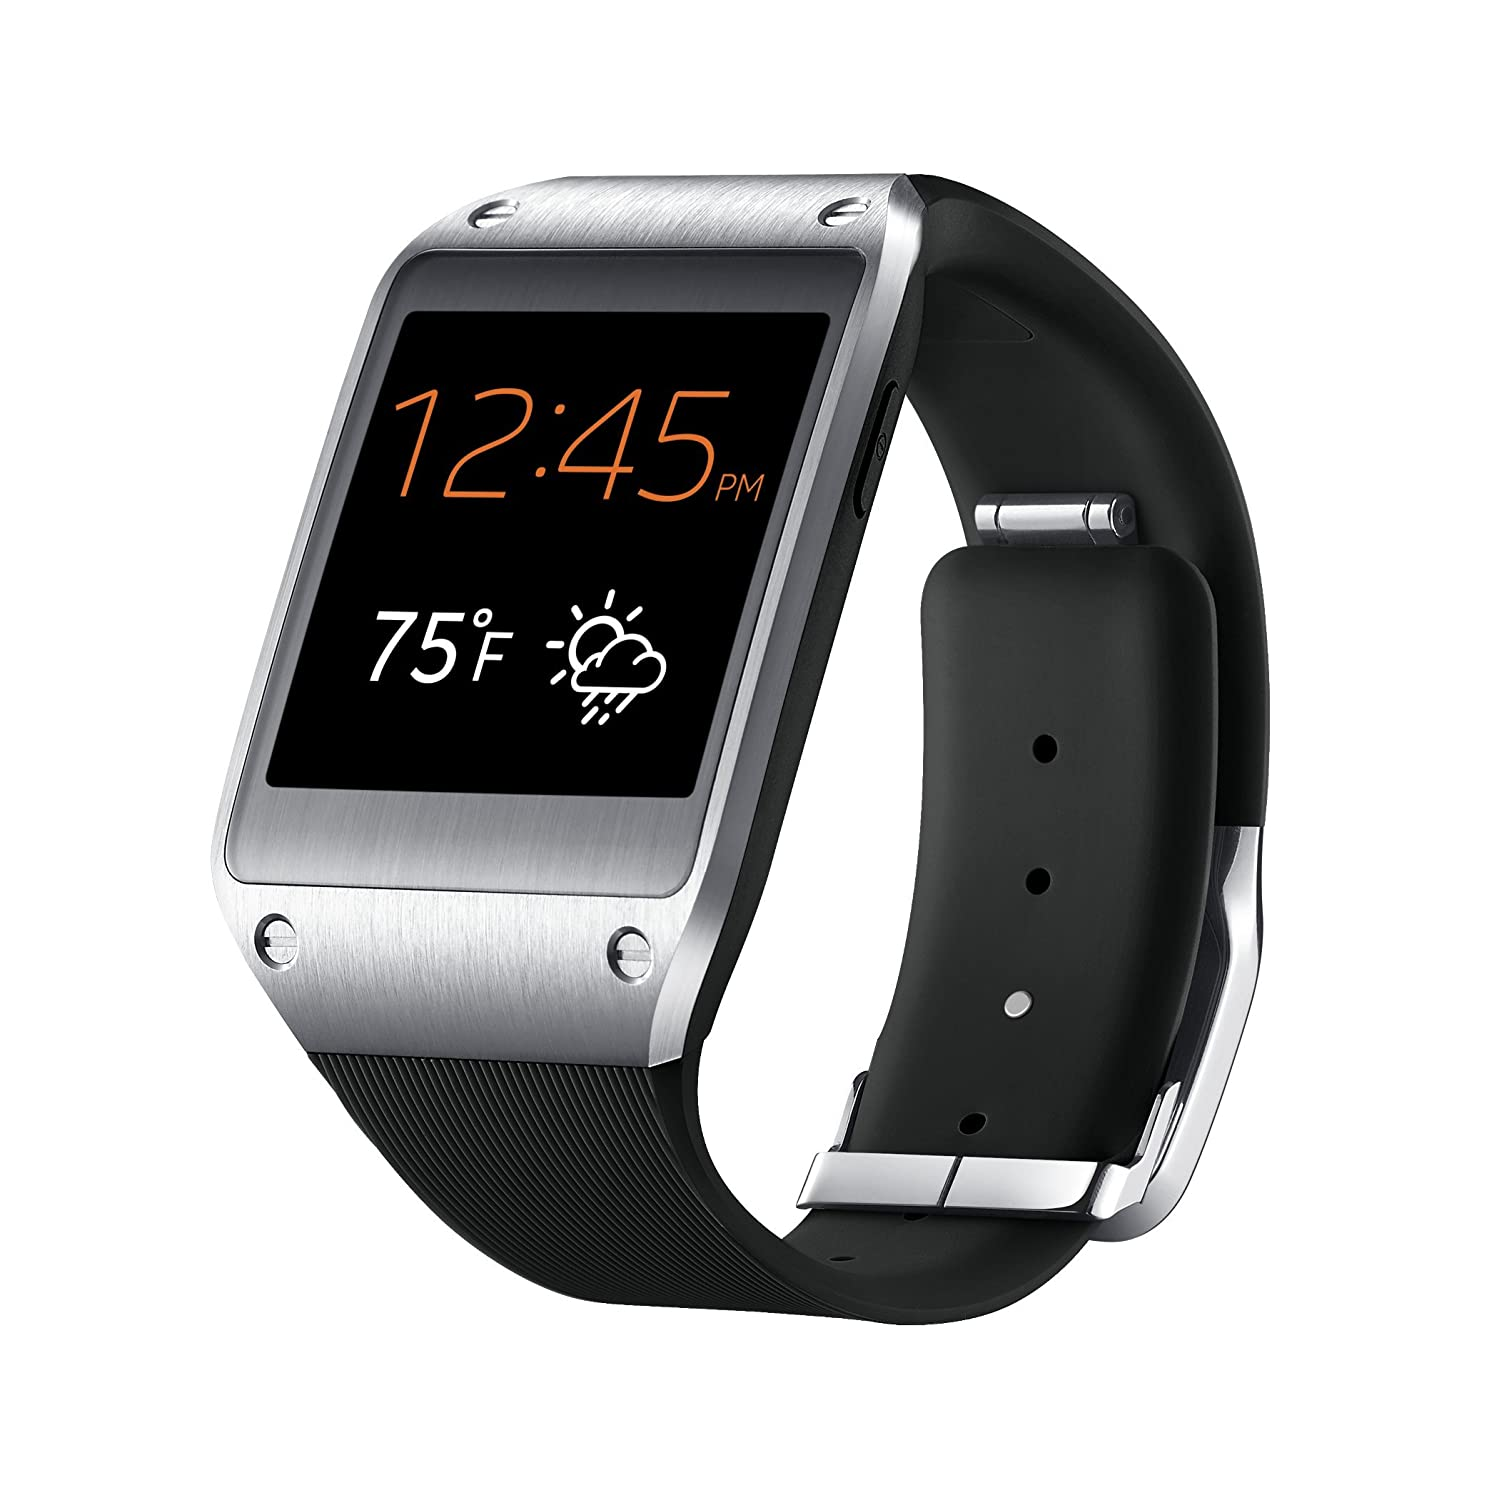 Samsung Galaxy Gear Smart Watch price in Pakistan, Samsung ...